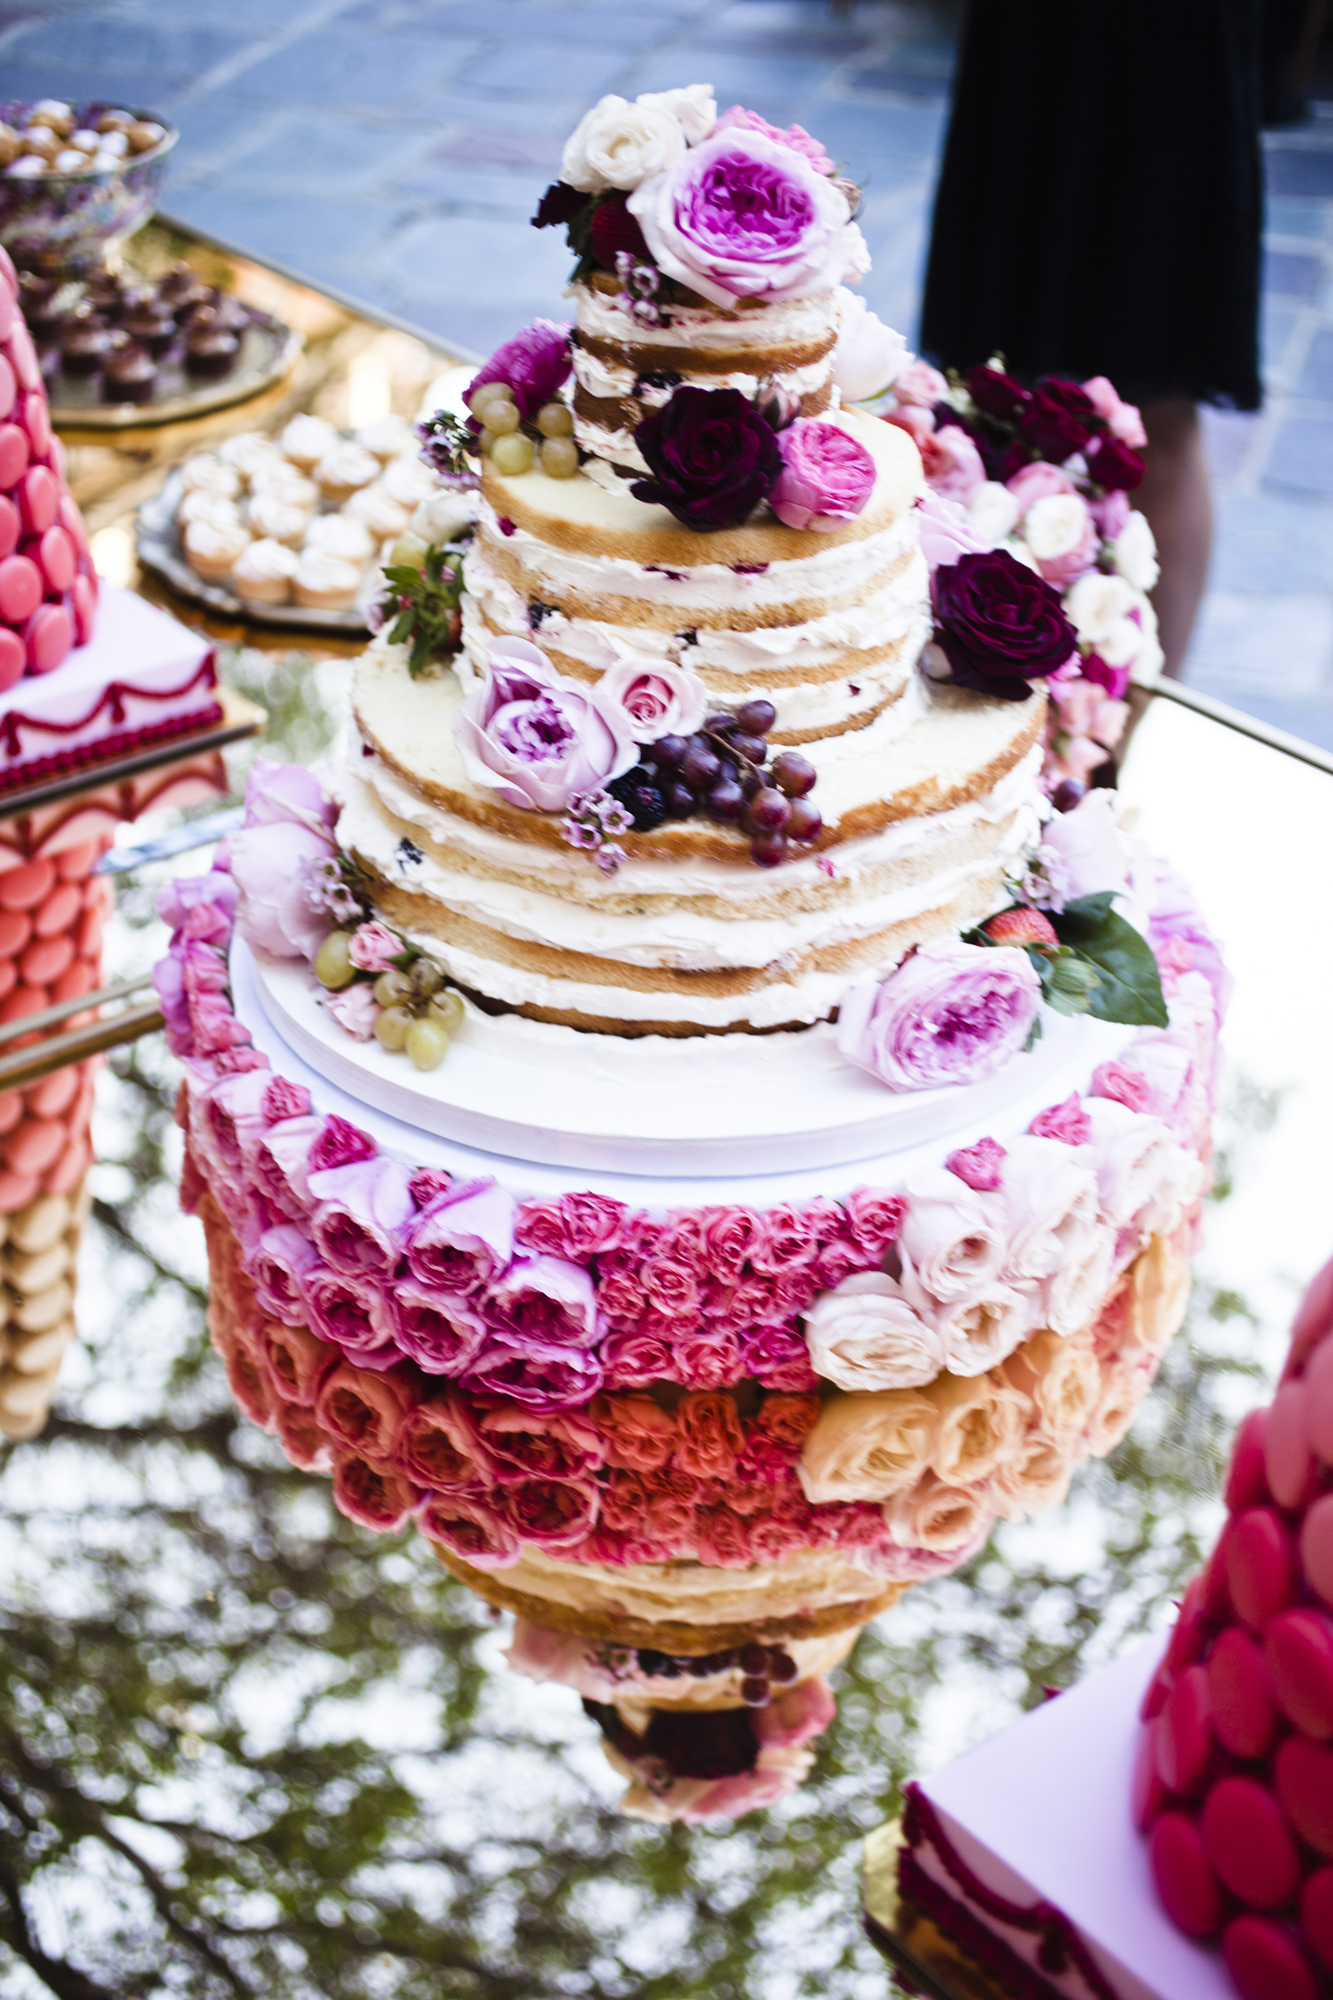 three=-tiered naked cake with fresh flowers, nikki sixx wedding cake